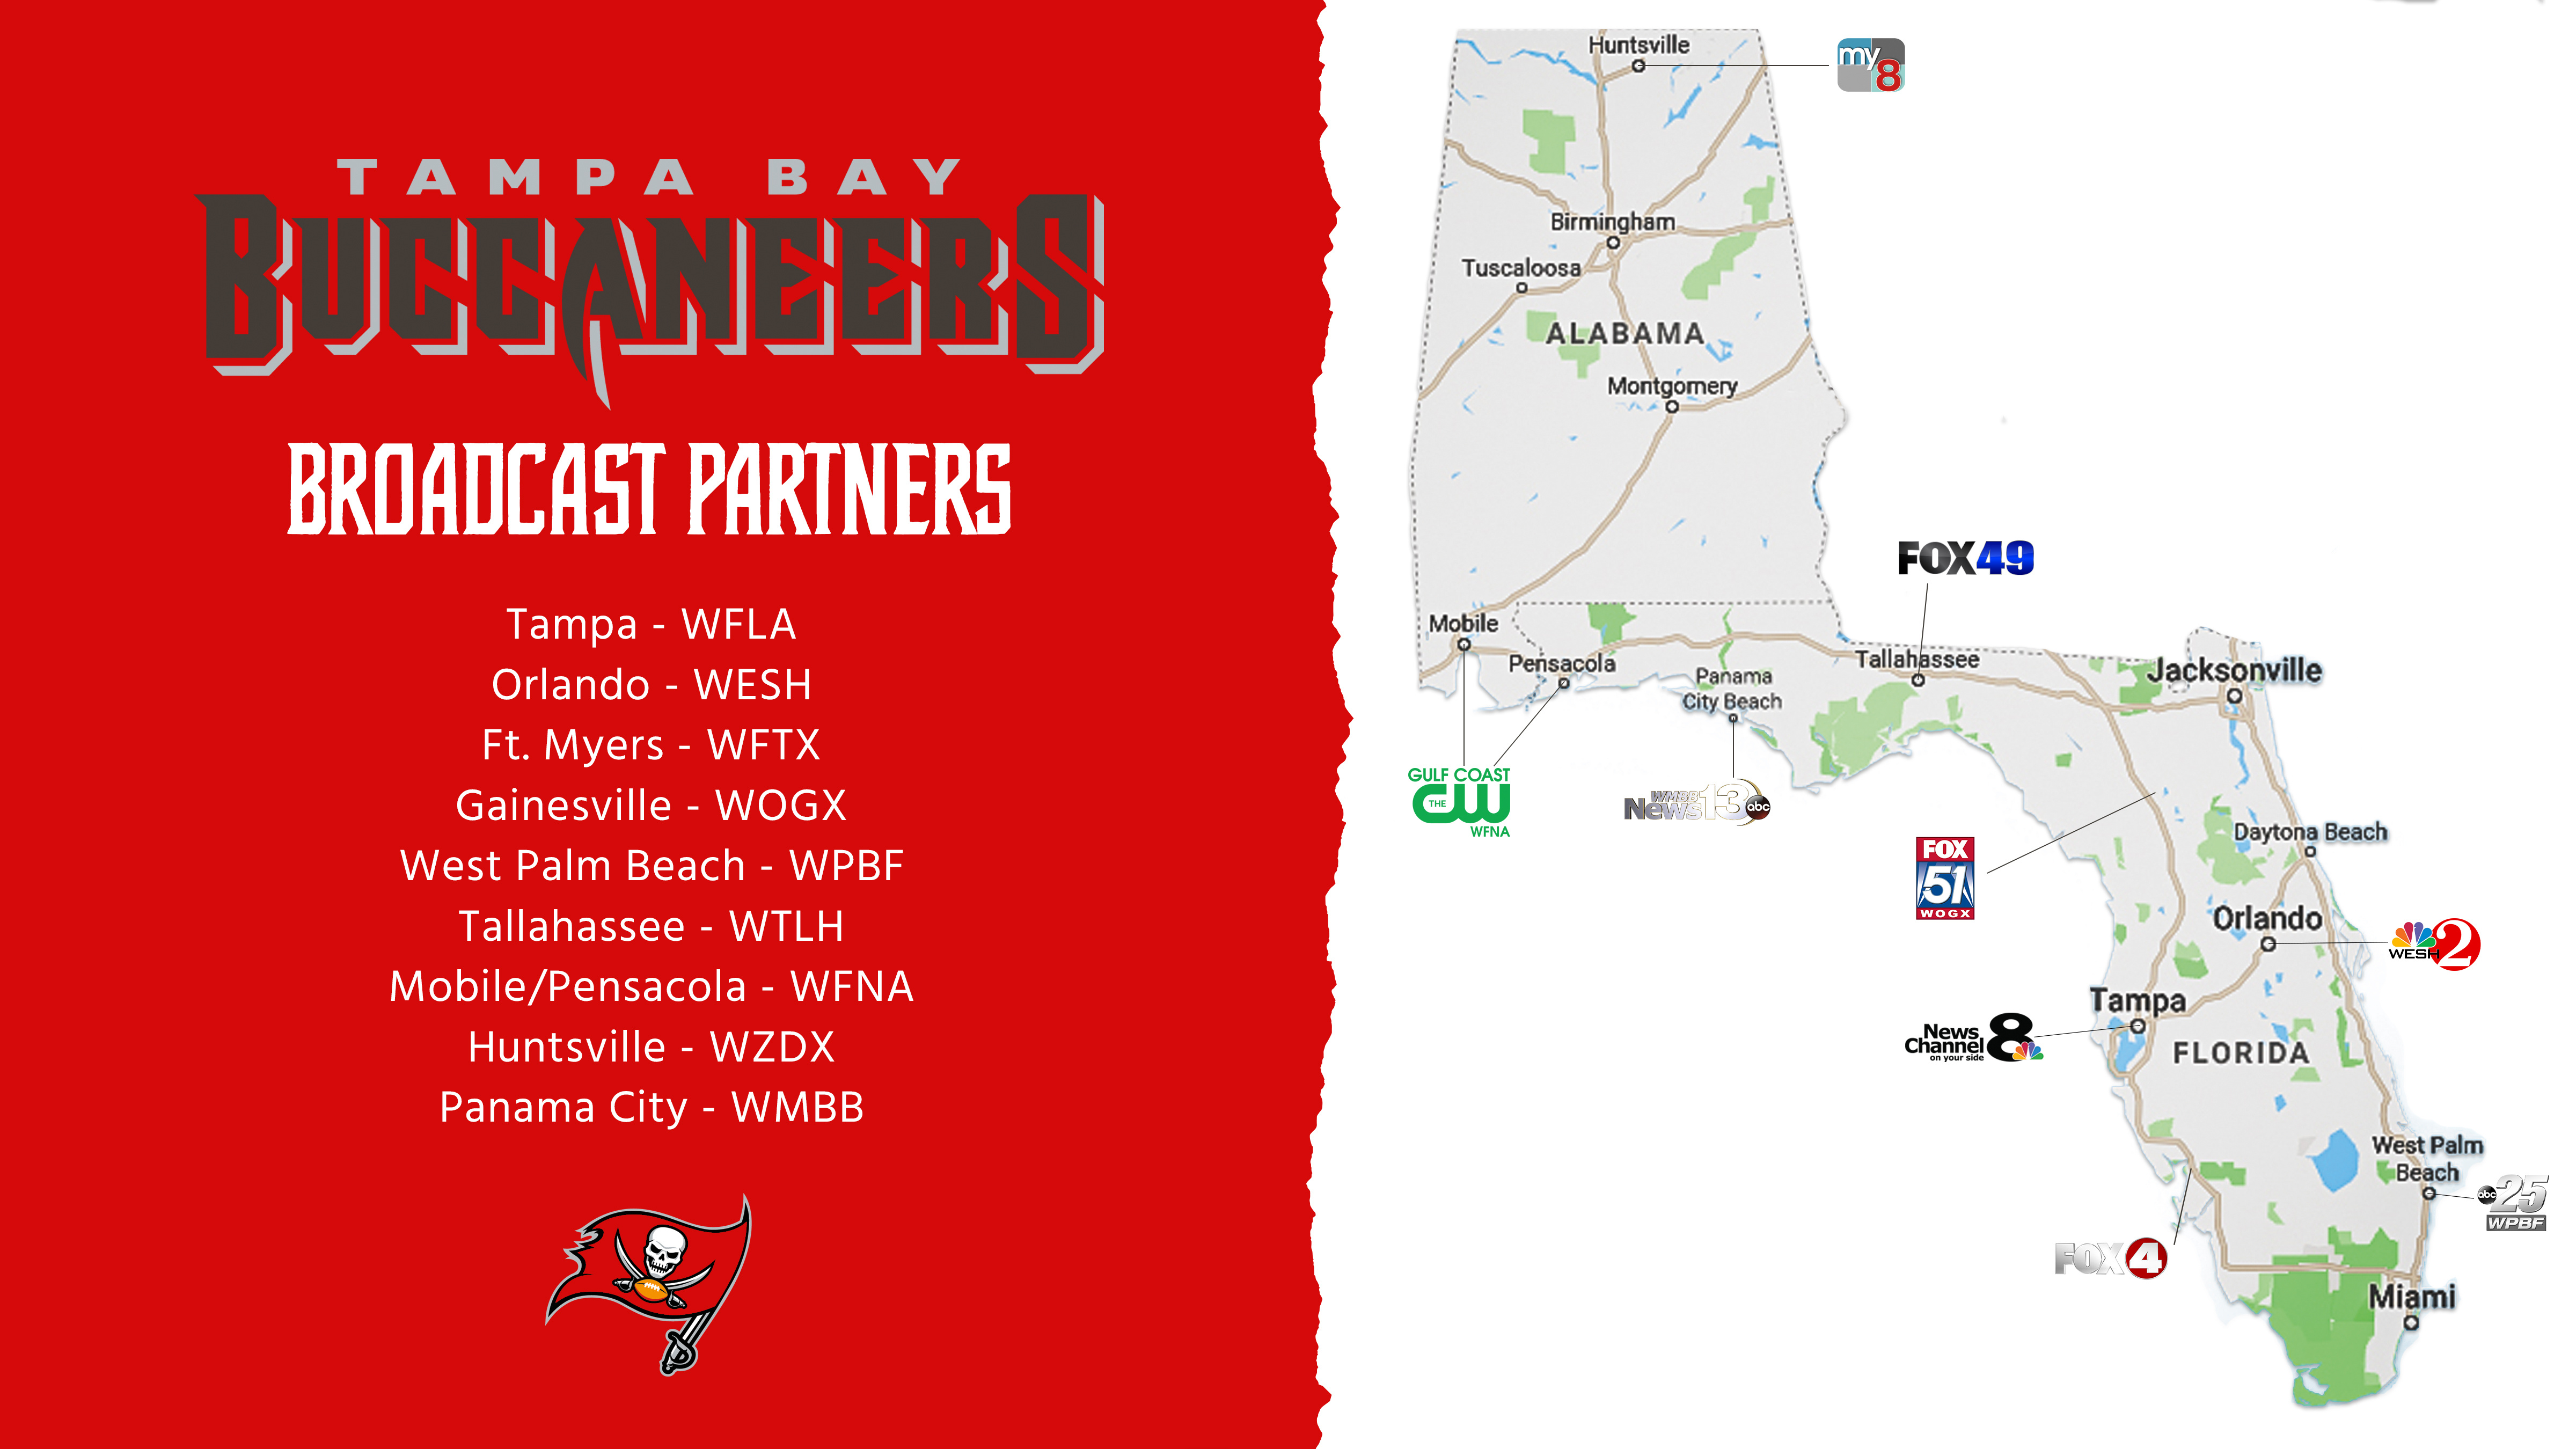 Bucs fans can watch preseason games and more from official broadcast partner WFLA and other local affiliates (WESH, WFTX, WOGX, WPBF, WTLH, WFNA, WZDX, WMBB).